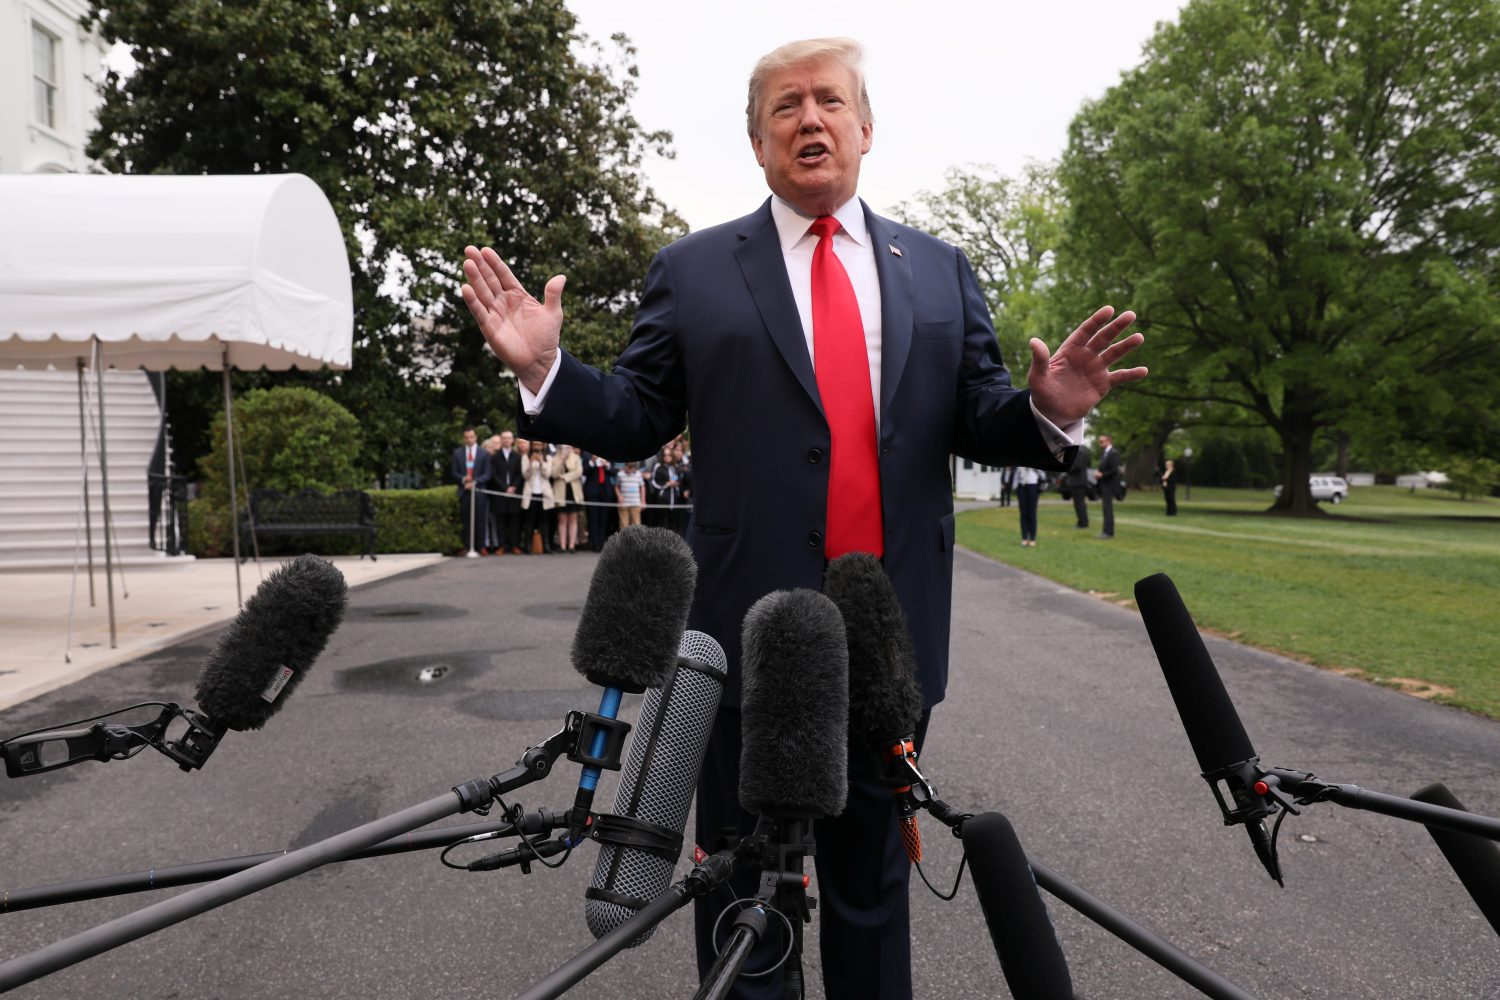 U.S. President Donald Trump talks to reporters as he departs for travel to Indianapolis, Indiana from the White House in Washington, U.S., April 26, 2019. REUTERS/Jonathan Ernst